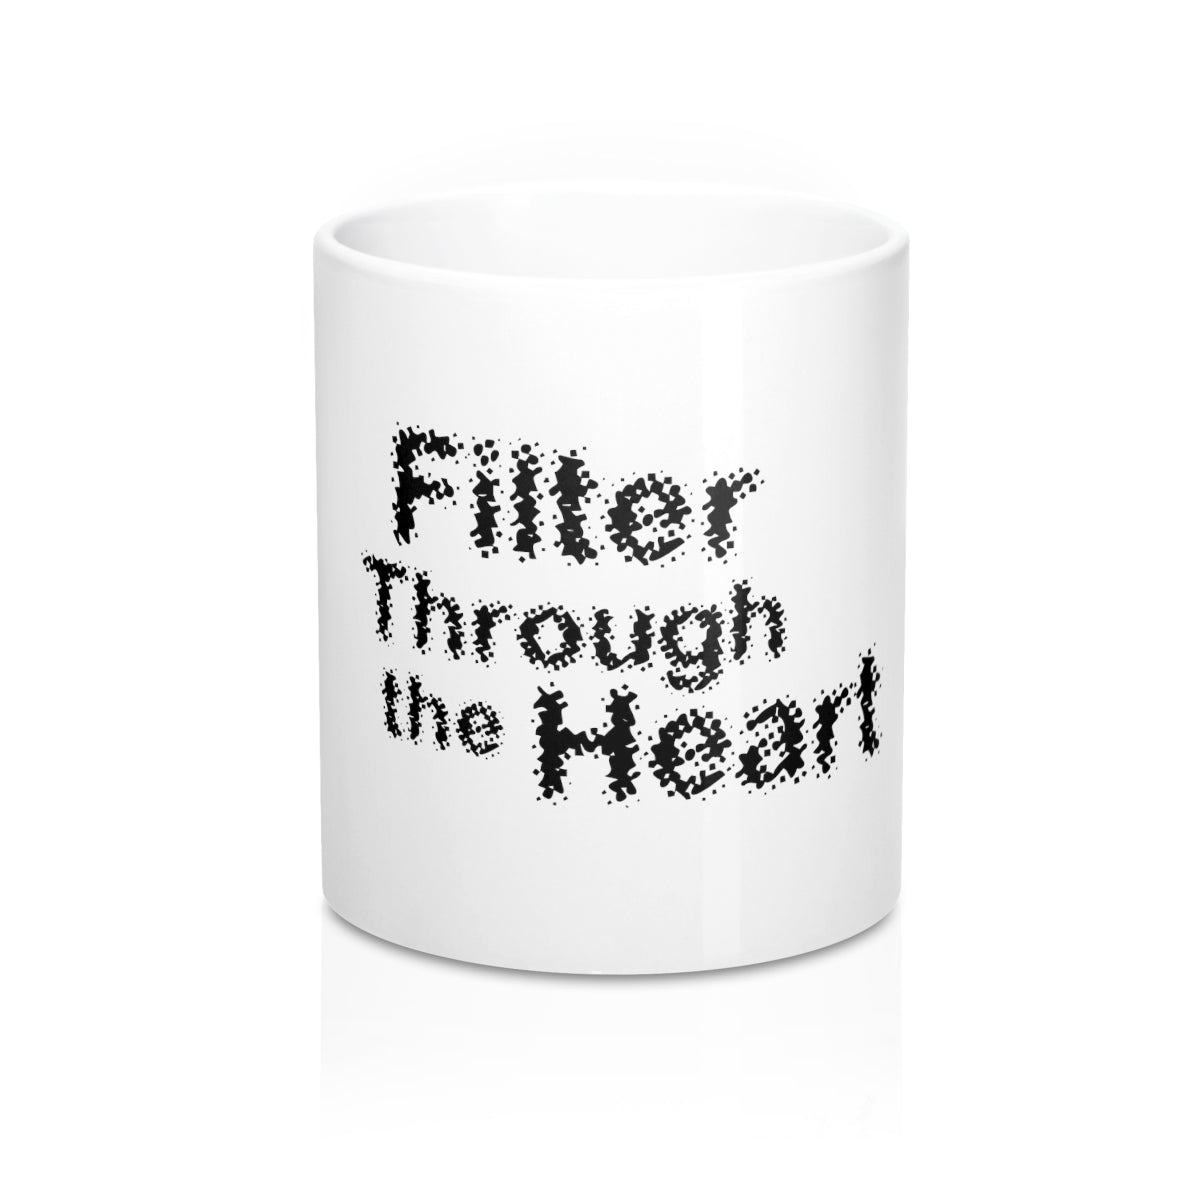 Filter Through the Heart, Blurred: Mug